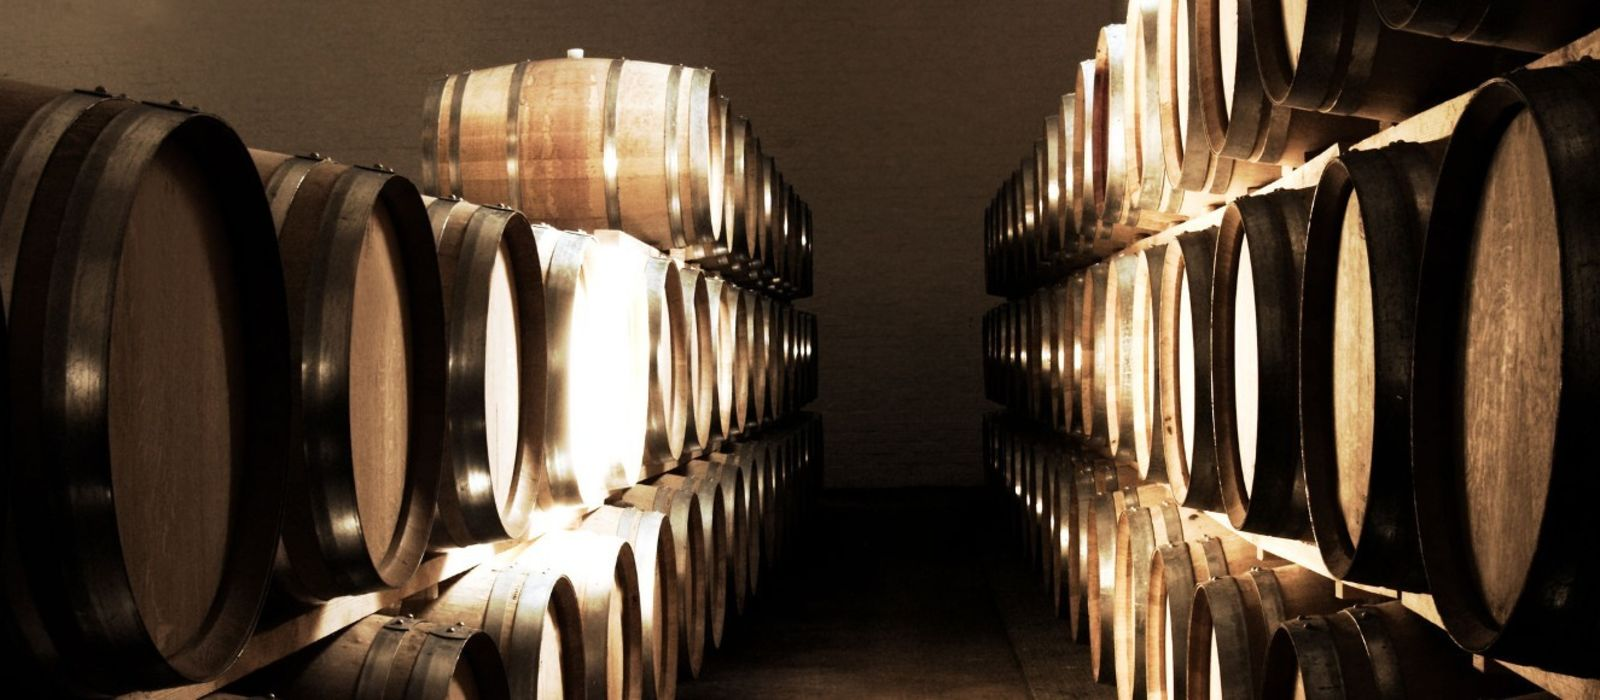 Dine with South Africa's Winemakers Tour Trip 5